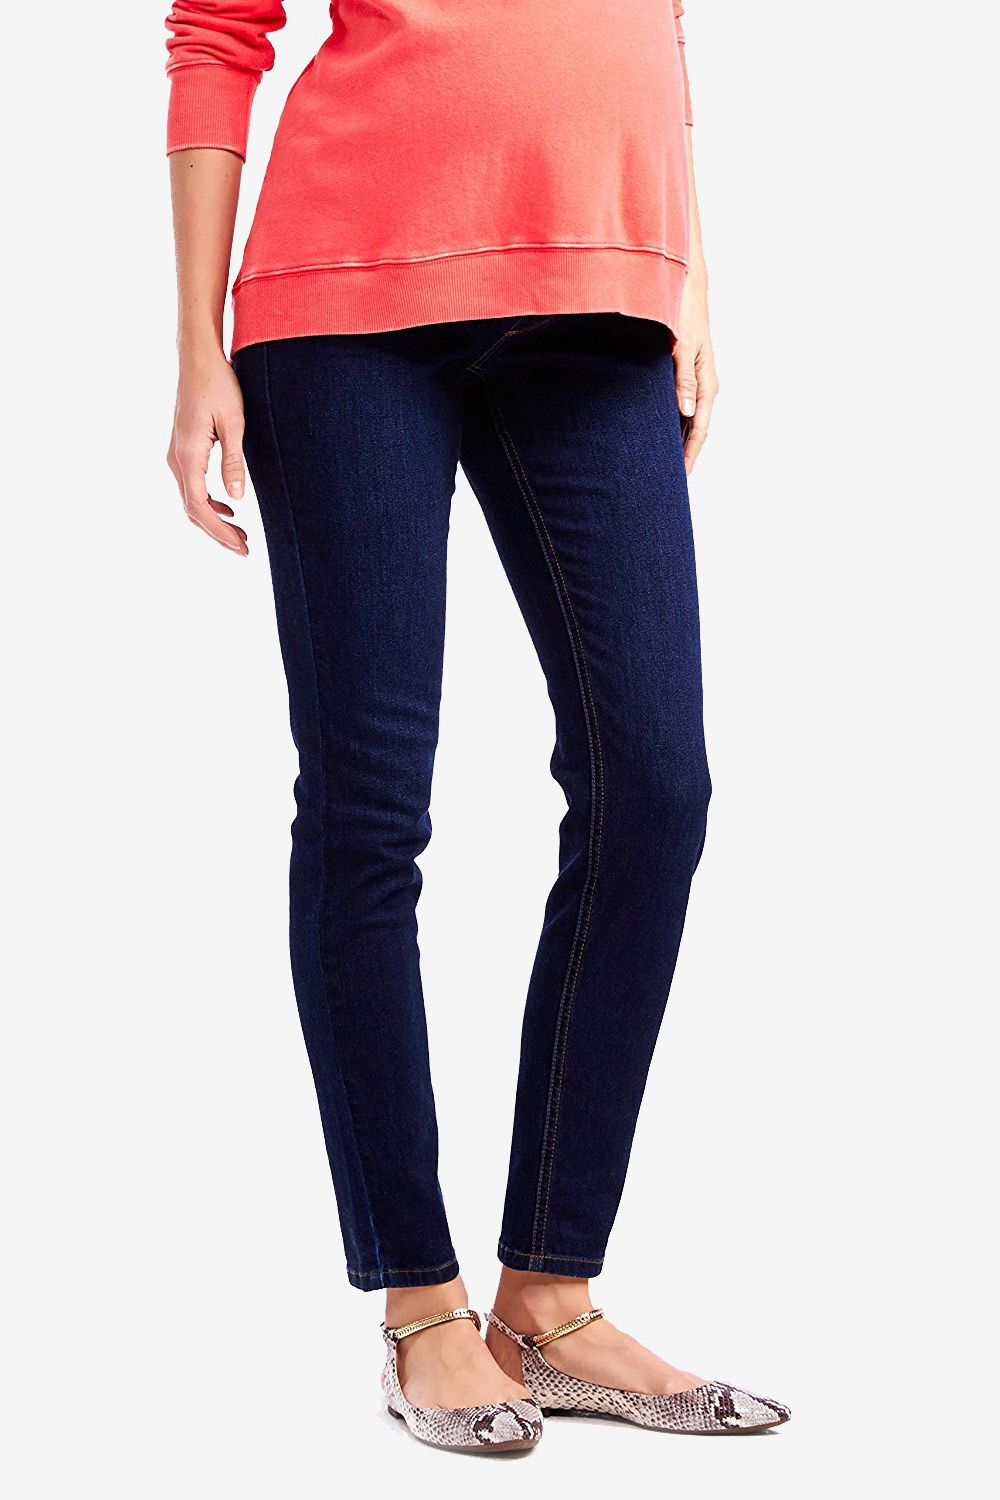 fedd10764eb4a Motherhood Maternity Jessica Simpson Petite Secret Fit Belly Jegging Maternity  Jeans